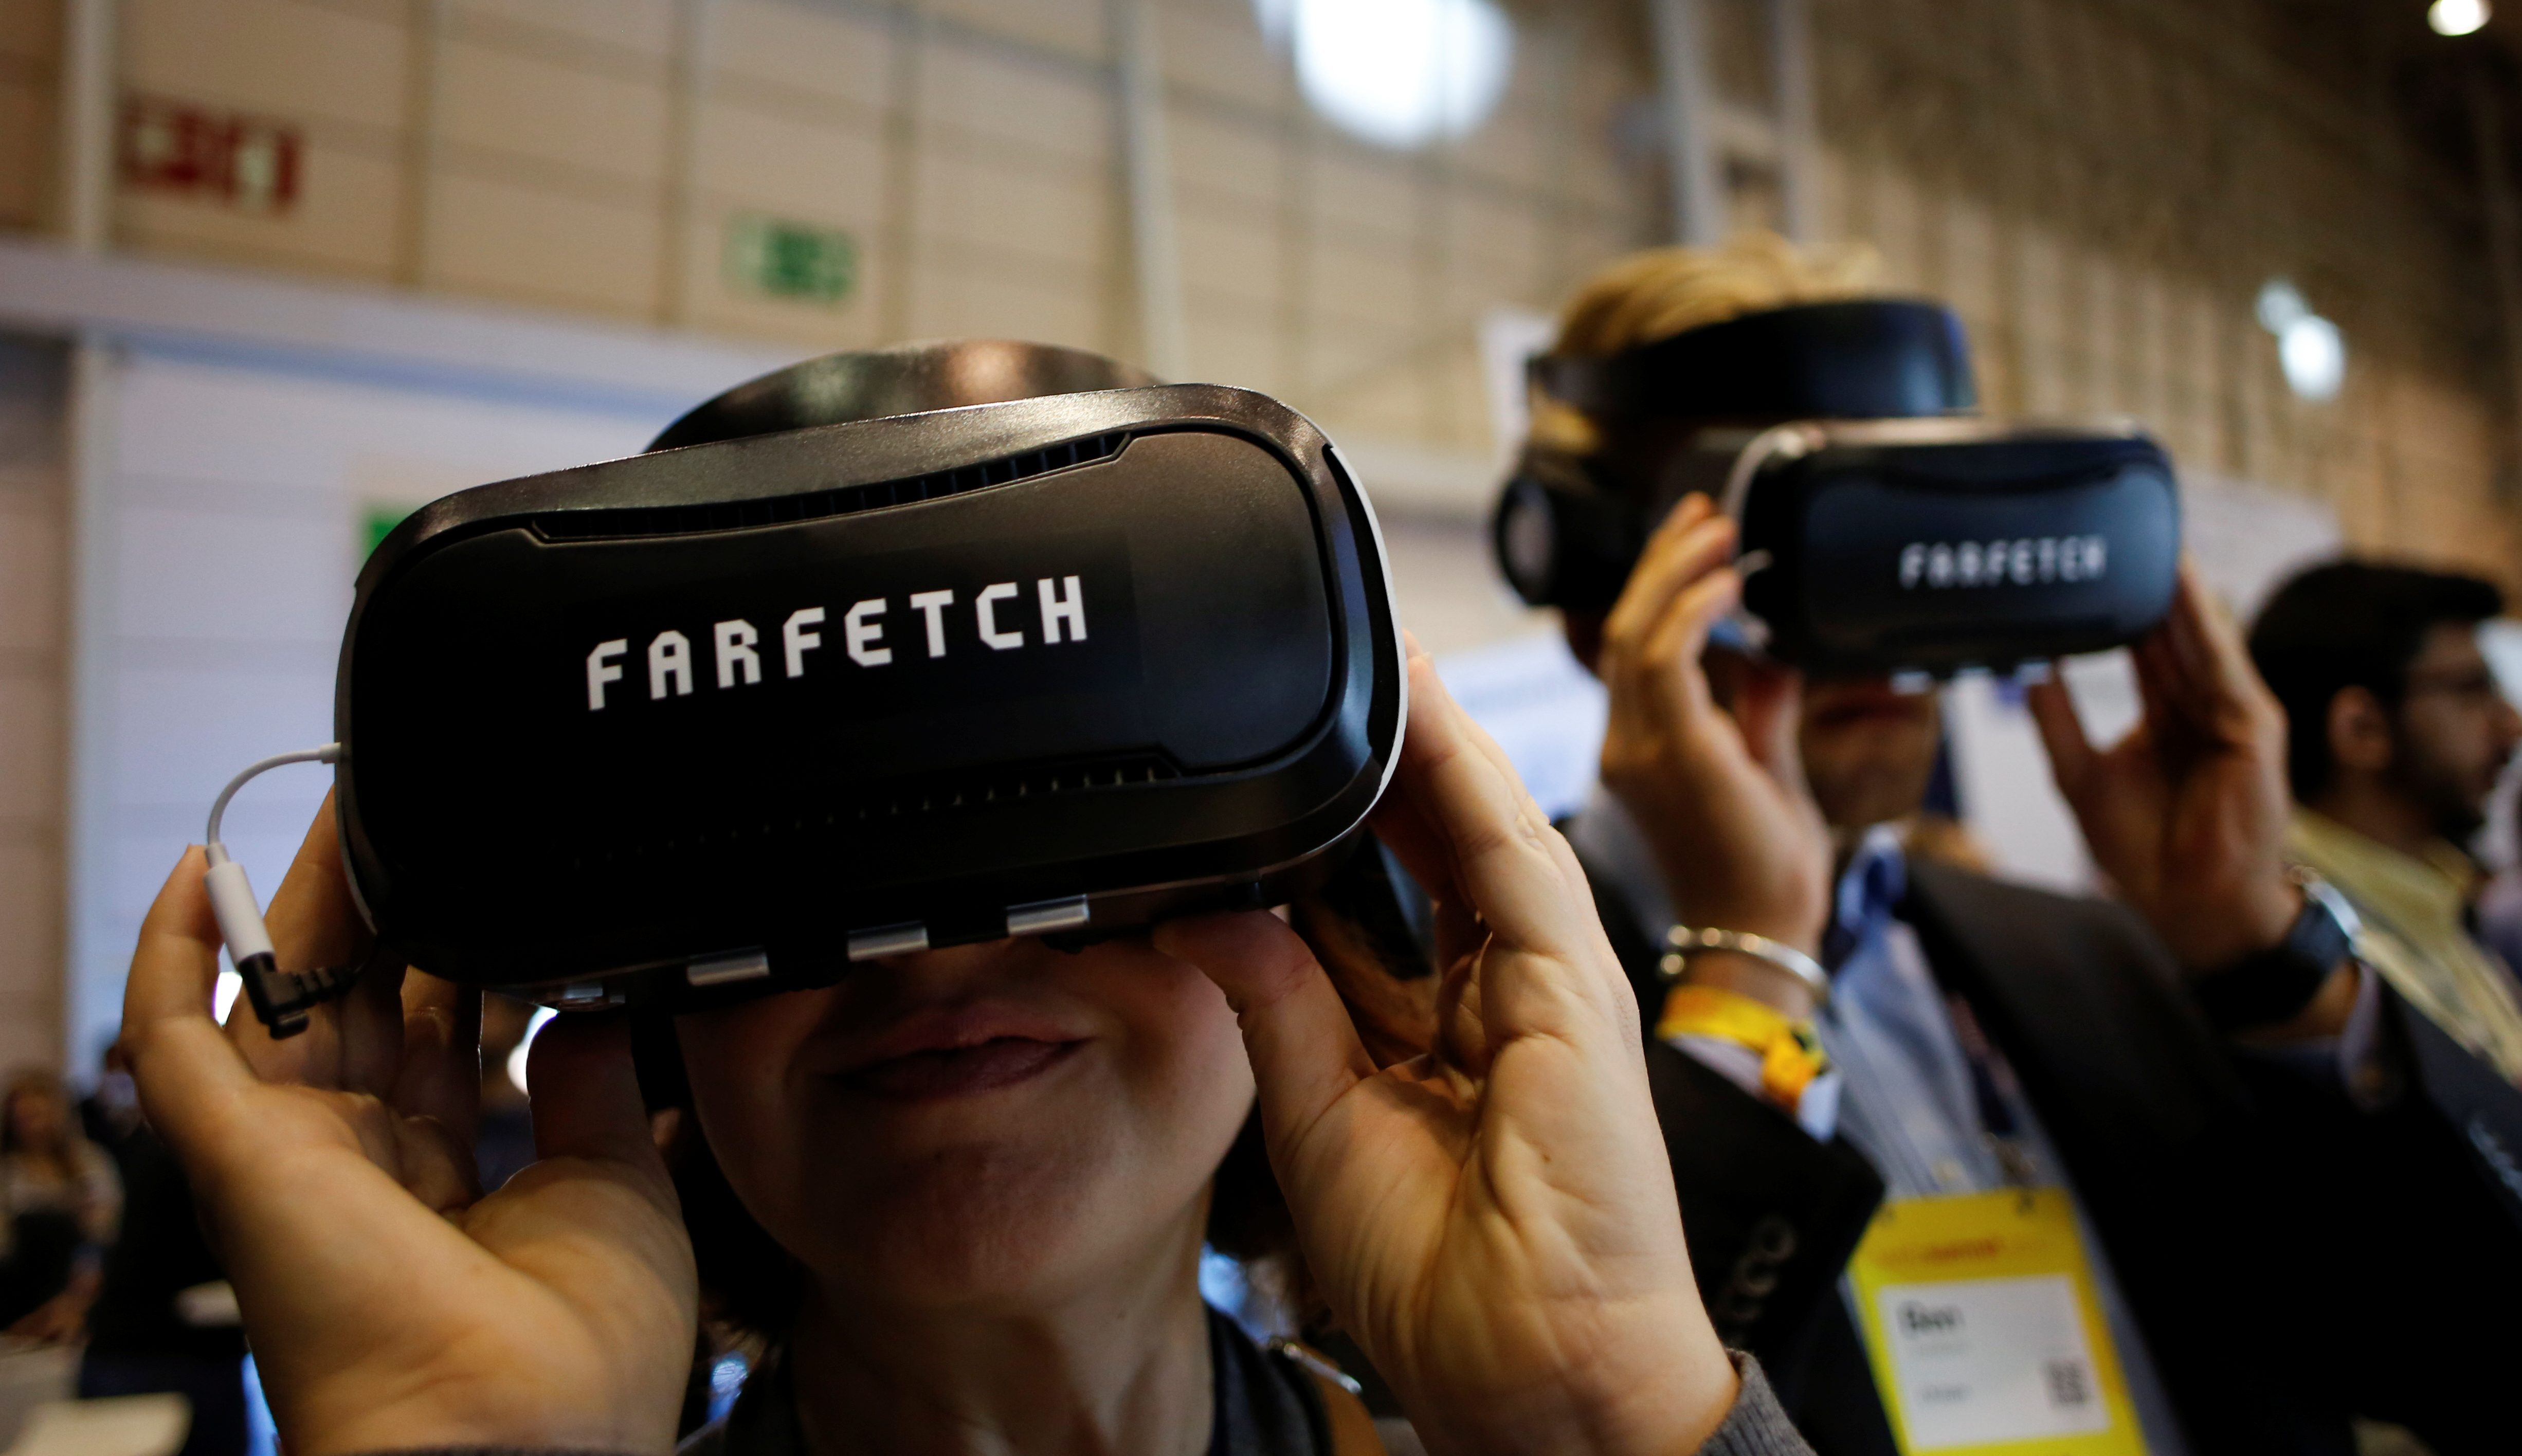 Visitors wear virtual reality glasses at the Farfetch stand during the Web Summit, Europe's biggest tech conference, in Lisbon, Portugal, November 8, 2017. REUTERS/Pedro Nunes - RC12C58A7850